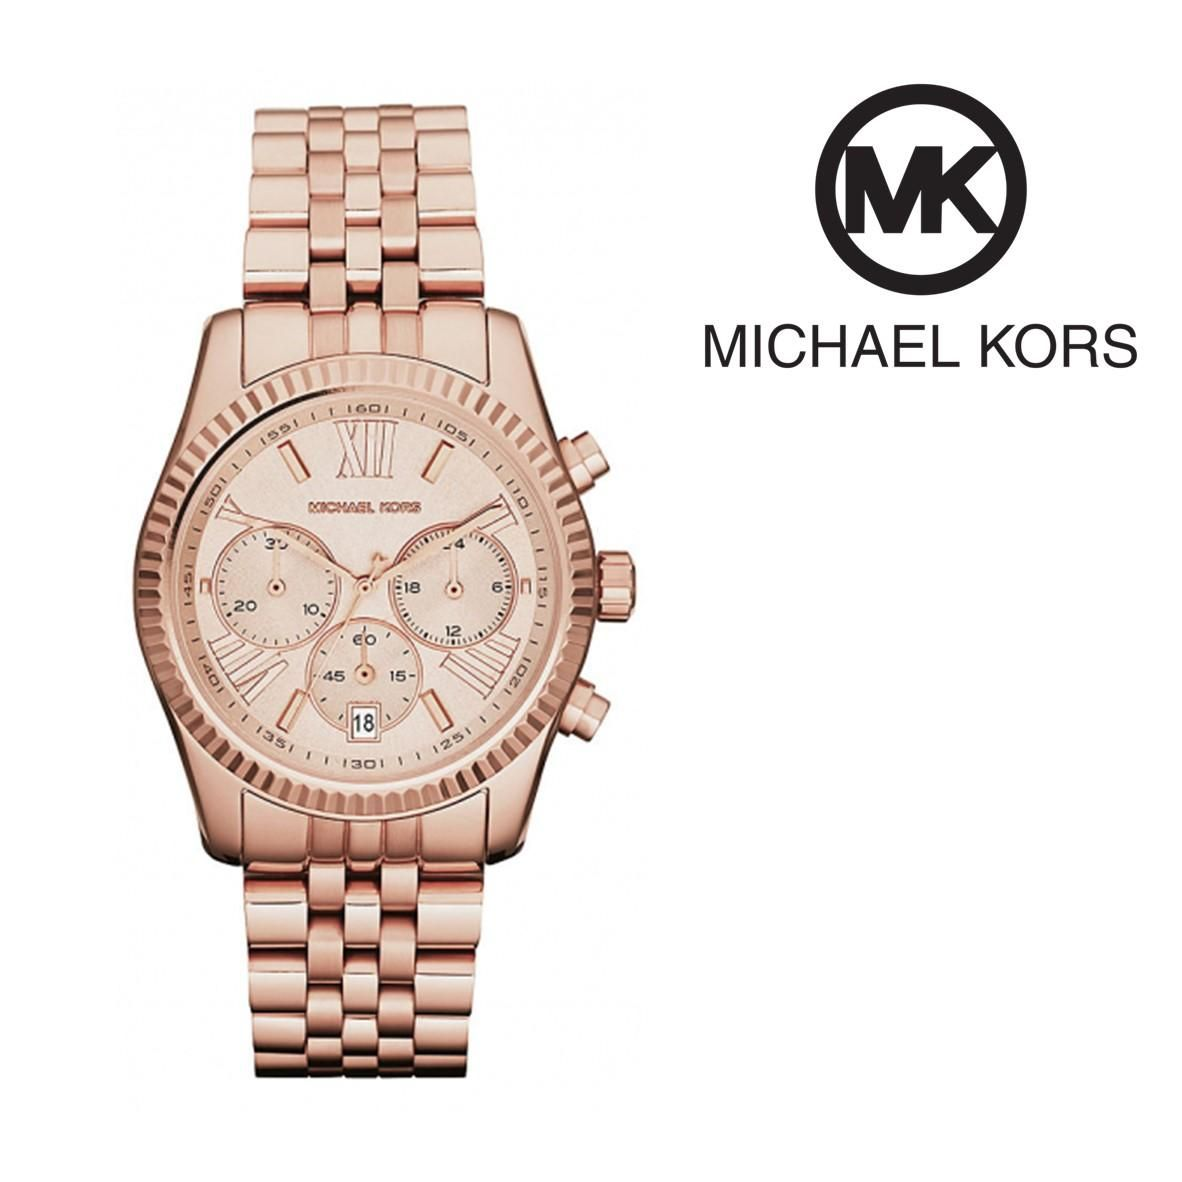 e10465ca2 Relógio Michael Kors Lexington Rose Gold | Cronógrafo | 5ATM | Dott.pt